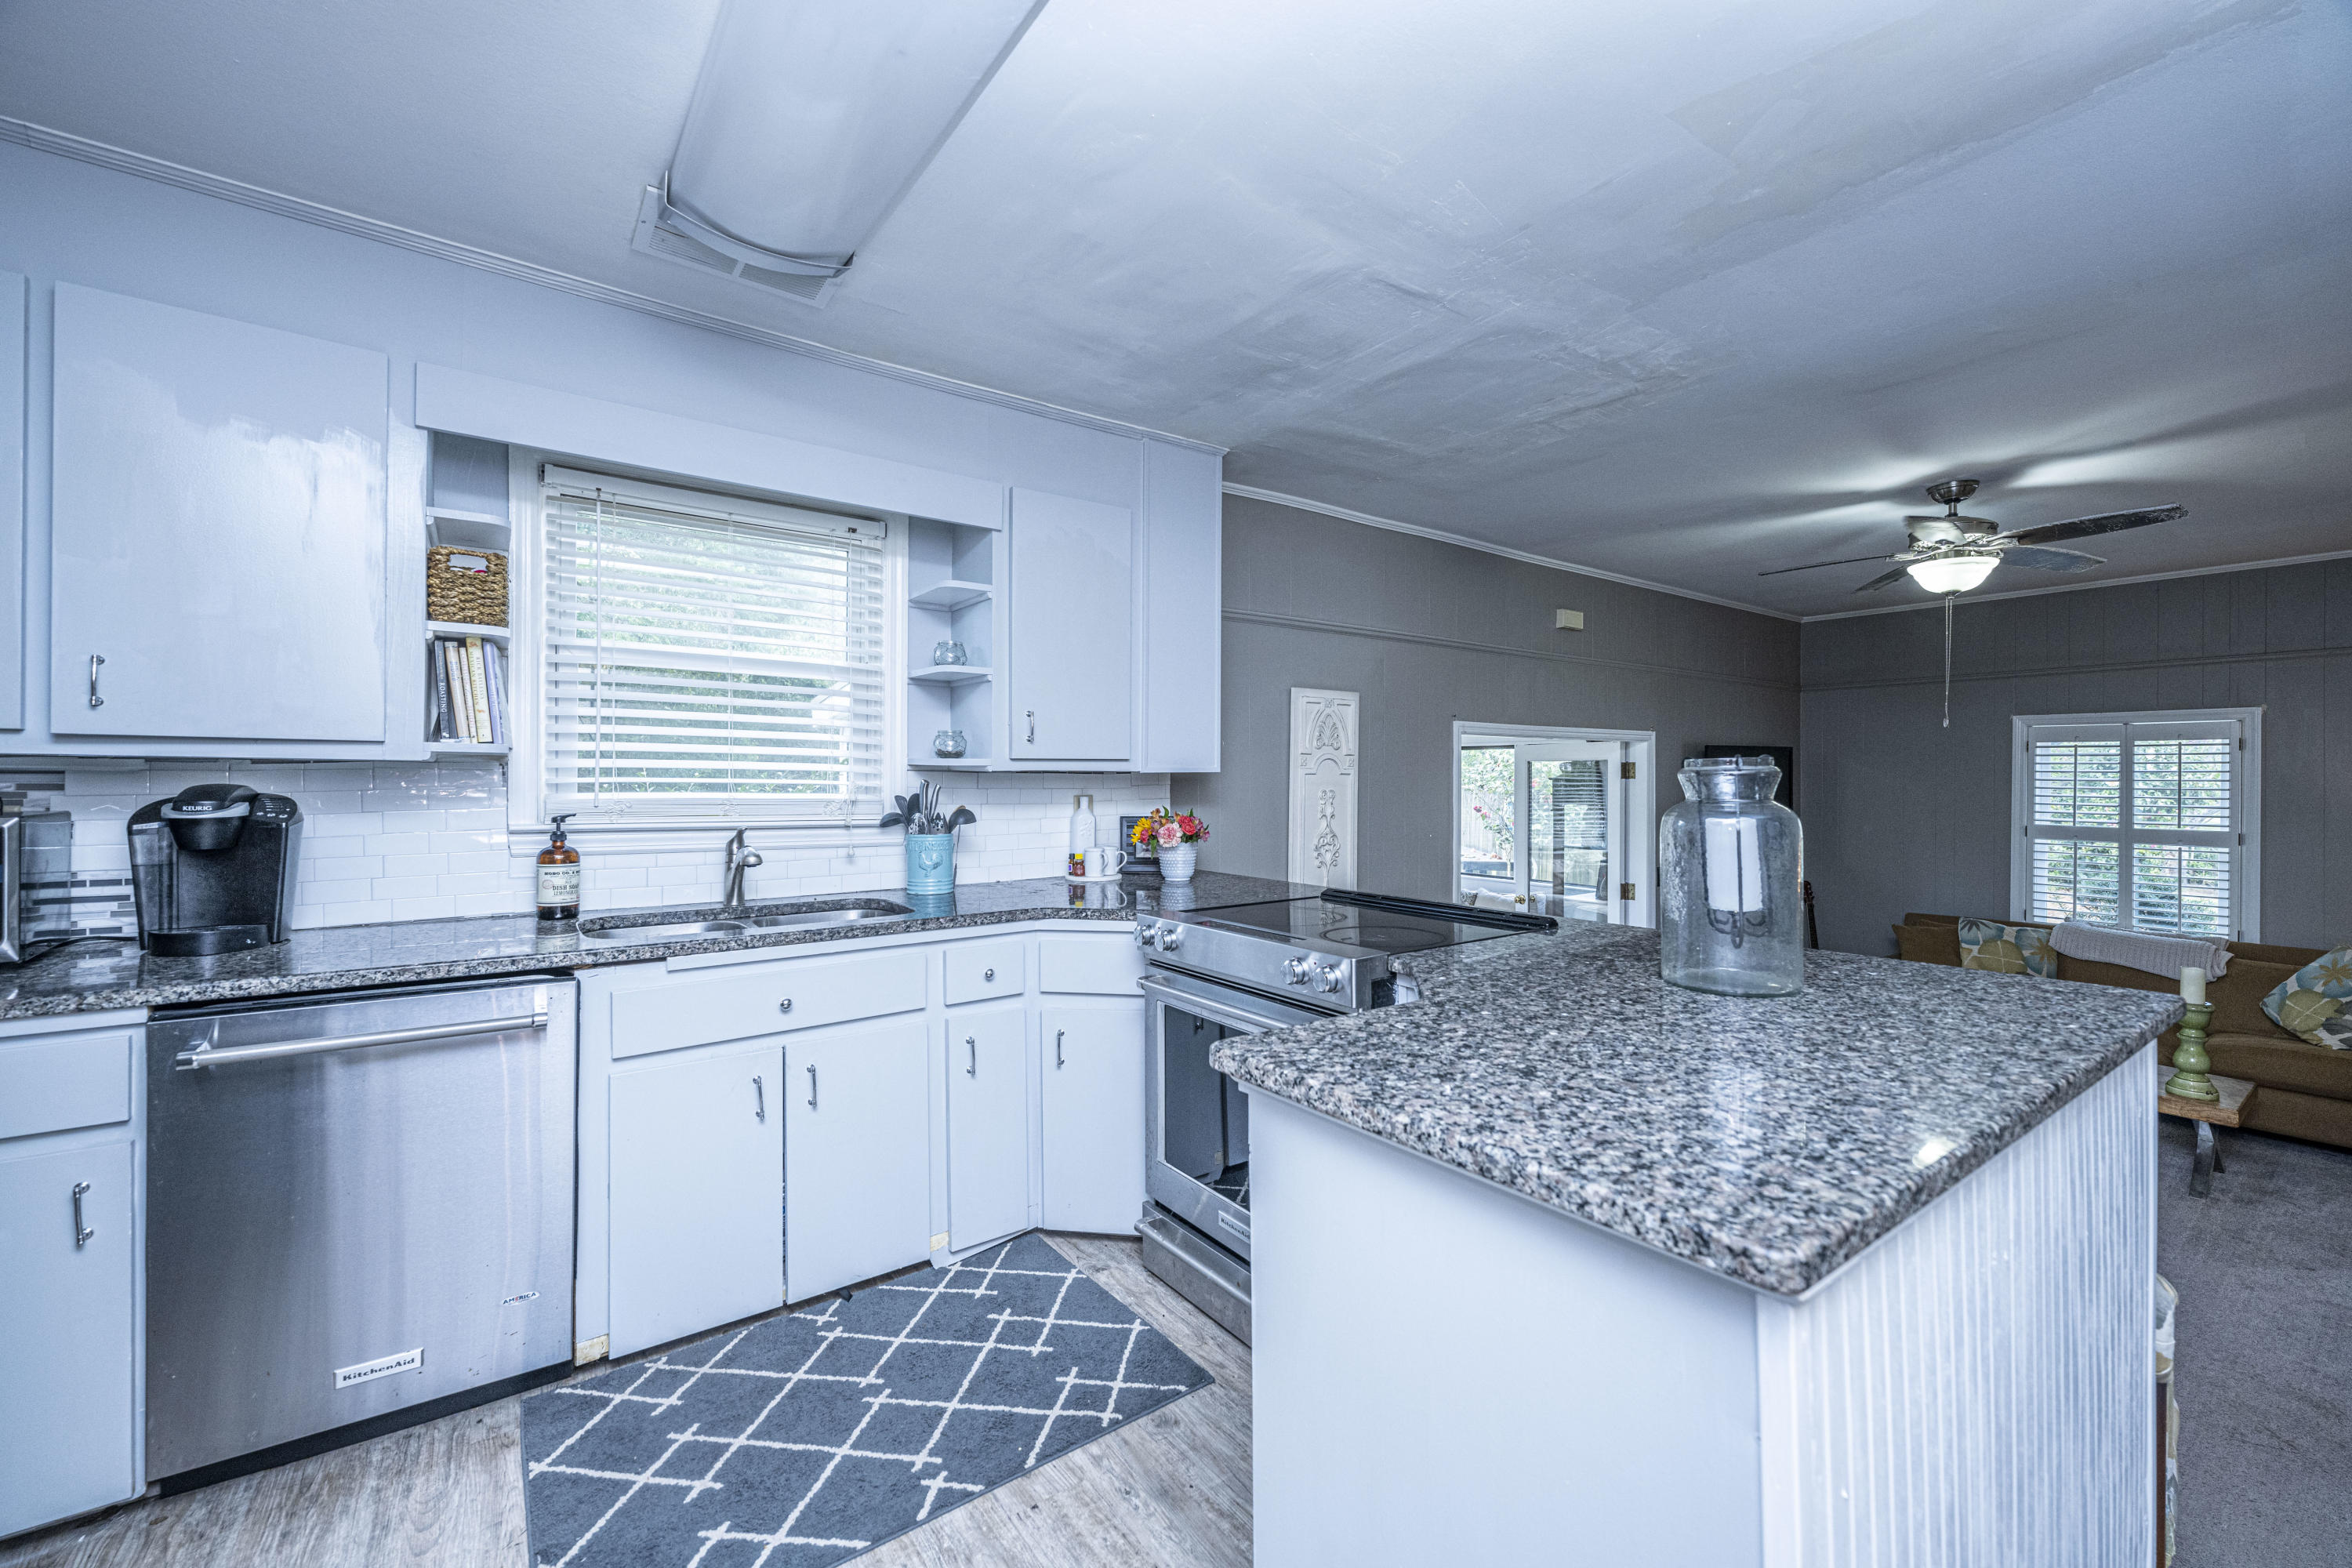 Stiles Point Homes For Sale - 775 Sparrow, Charleston, SC - 41